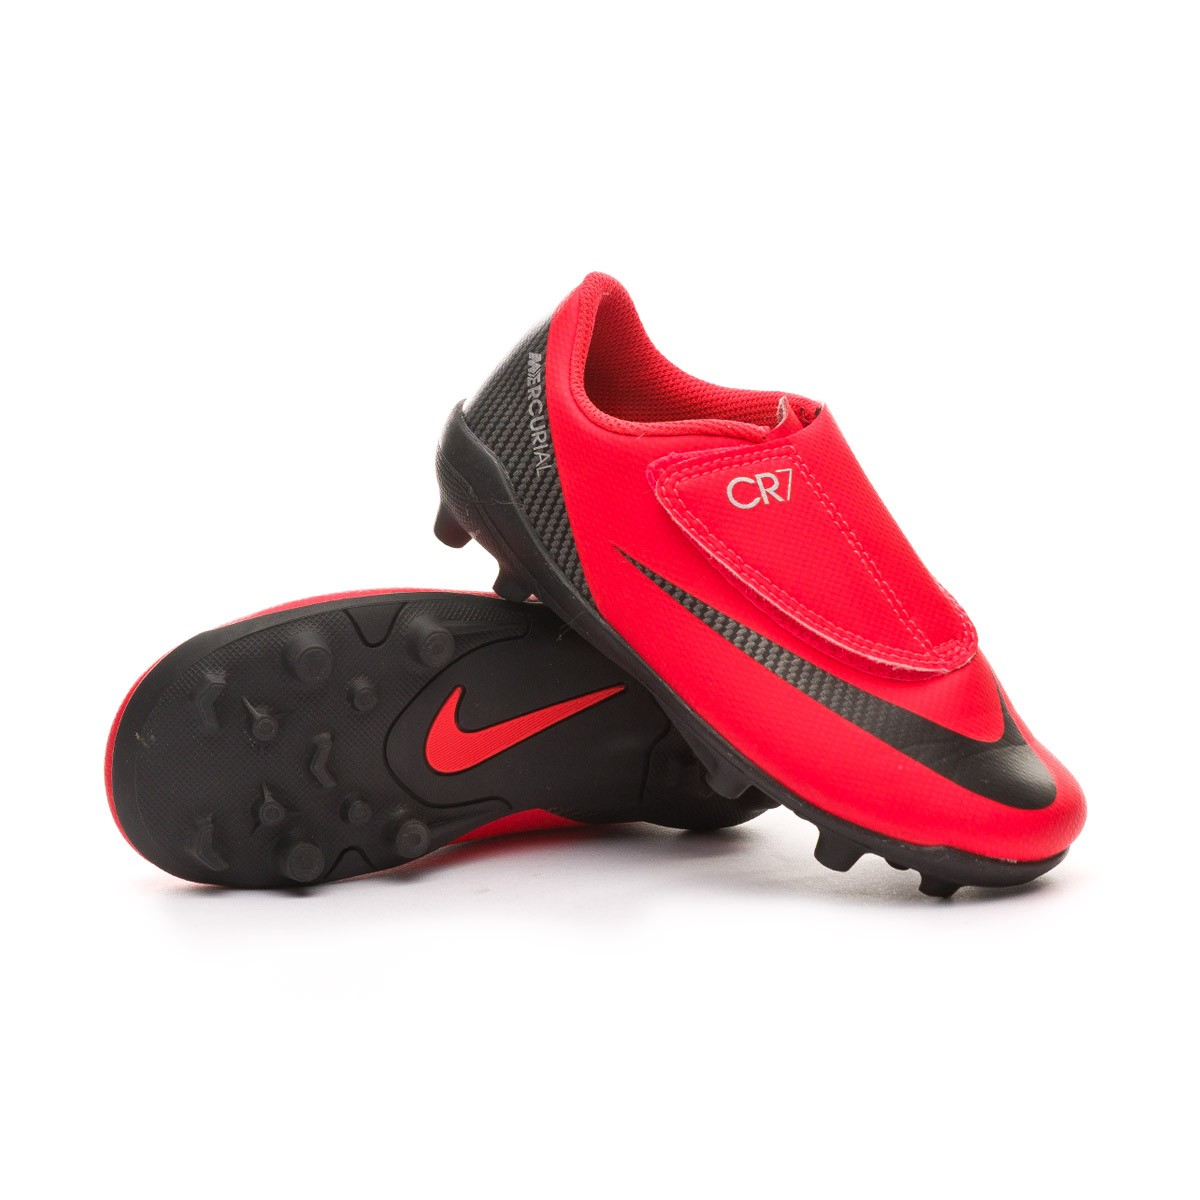 358b9c07d33 Bota de fútbol Nike Mercurial Vapor XII Club CR7 MG Niño Bright  crimson-Black-Chrome - Tienda de fútbol Fútbol Emotion